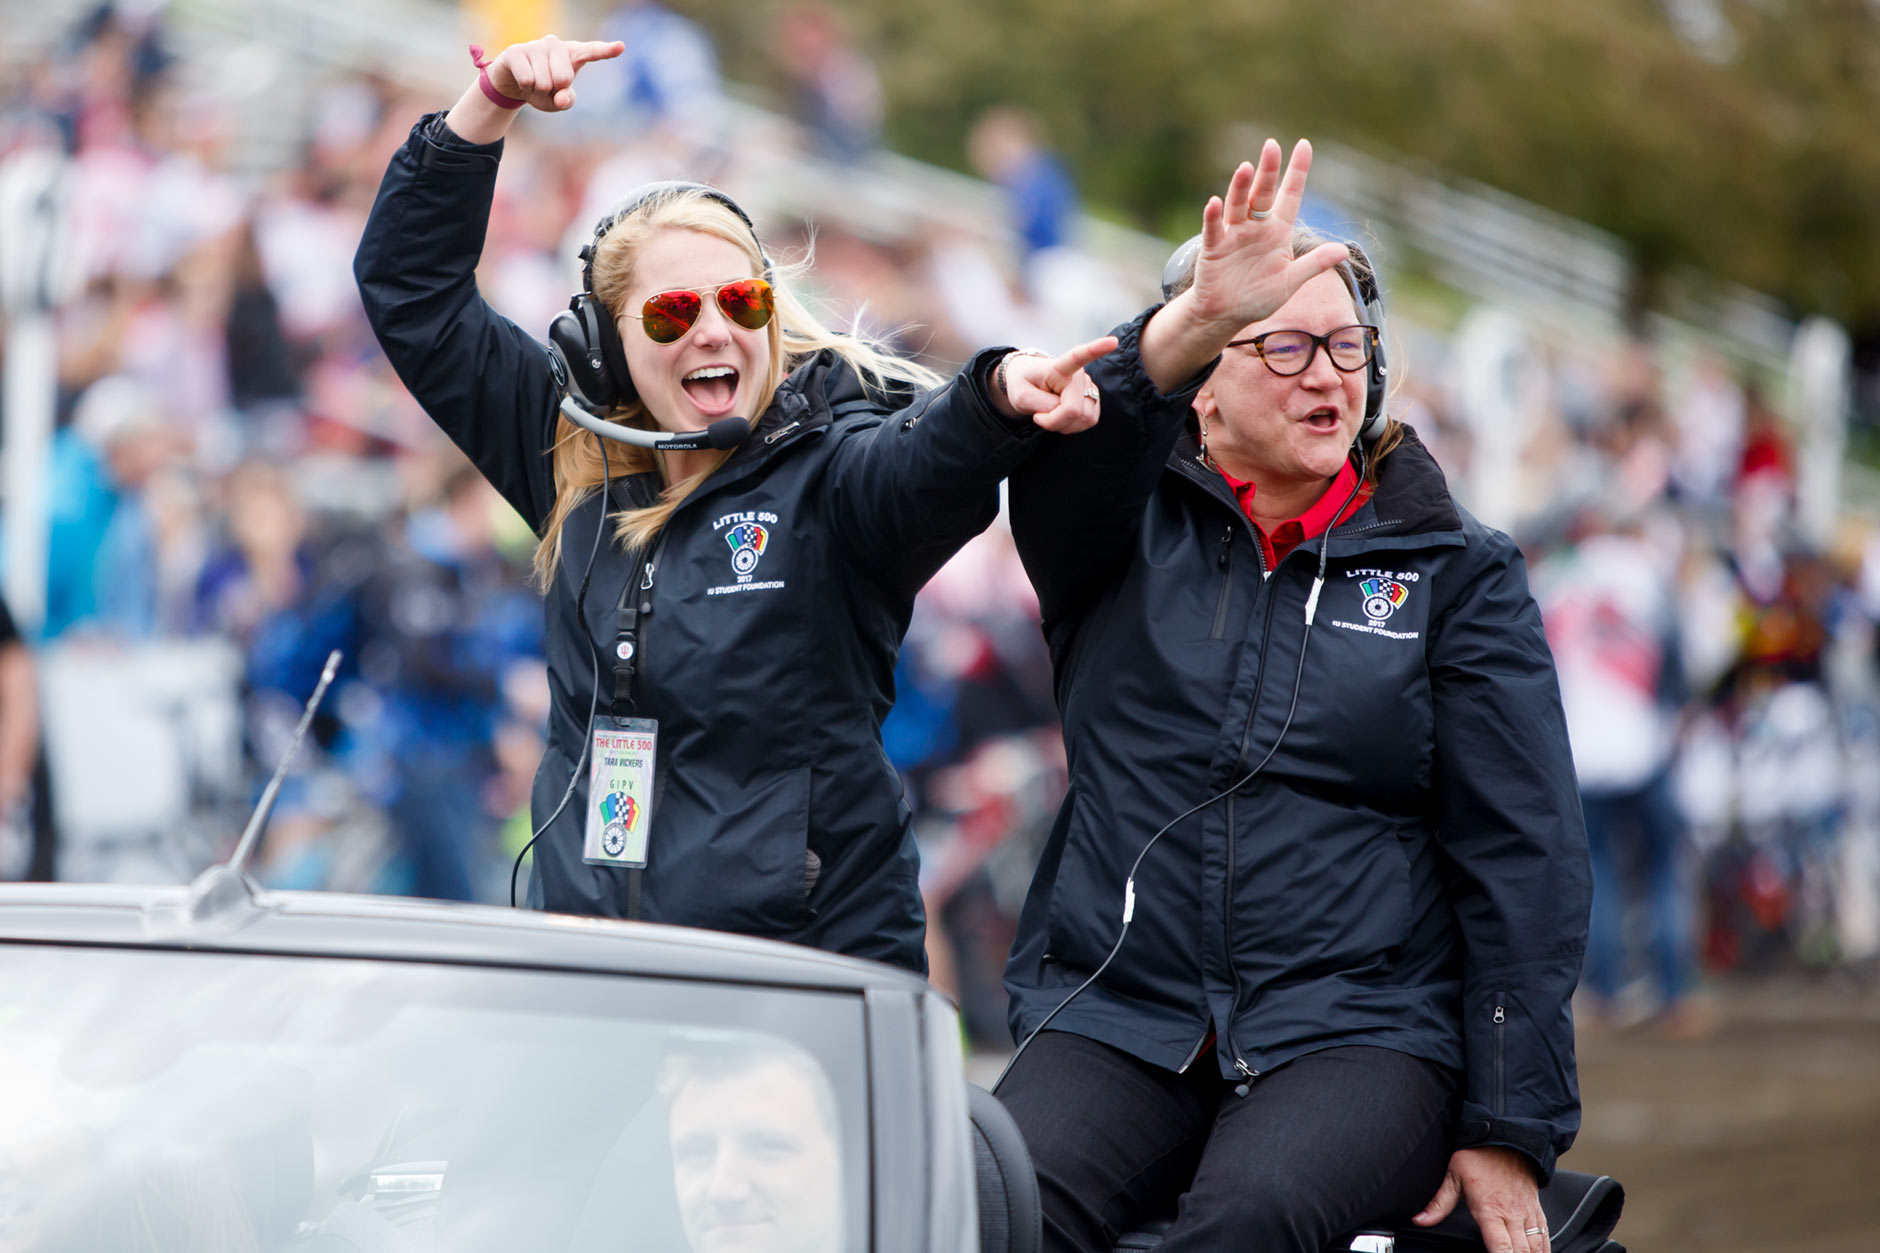 Indiana University Student Foundation Director Tara Vickers, left, and Assistant Director for Operations Bethany Miller wave during the parade lap around the track before the Men's Little 500 at Bill Armstrong Stadium on Saturday, April 22, 2017. (James Brosher/IU Communications)